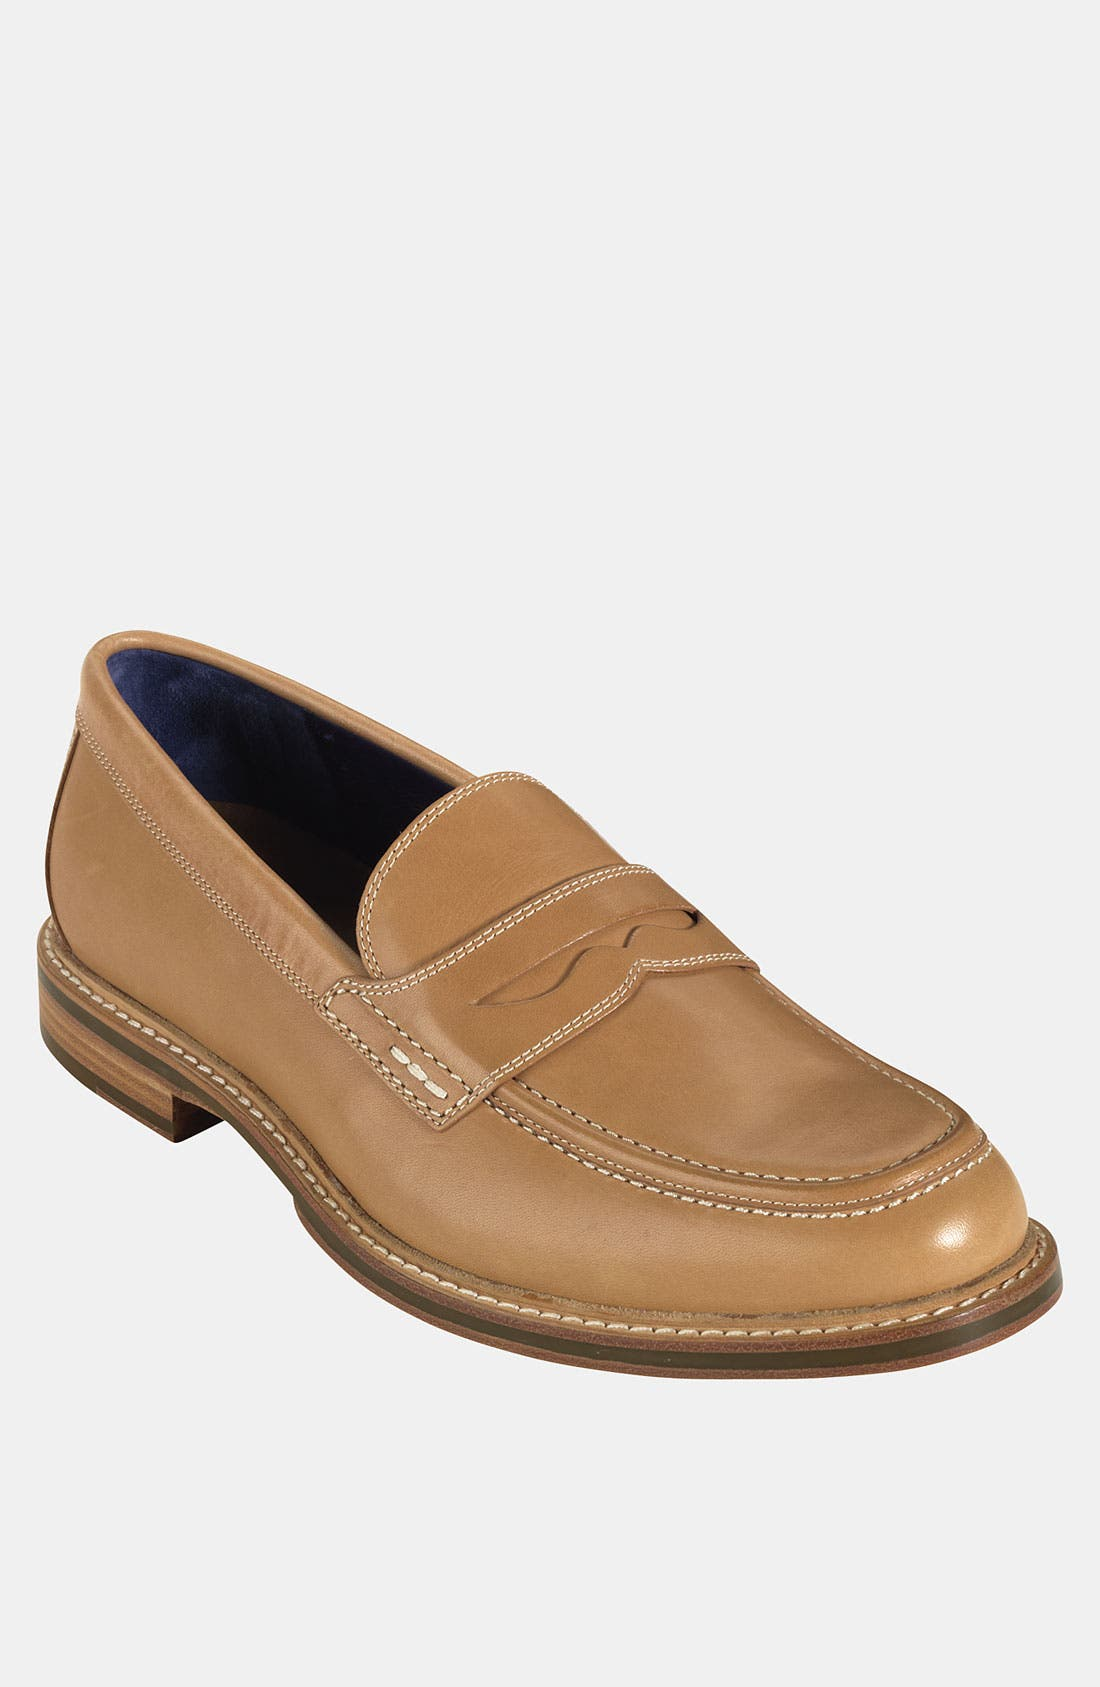 Main Image - Cole Haan 'Cooper Square' Loafer   (Men)